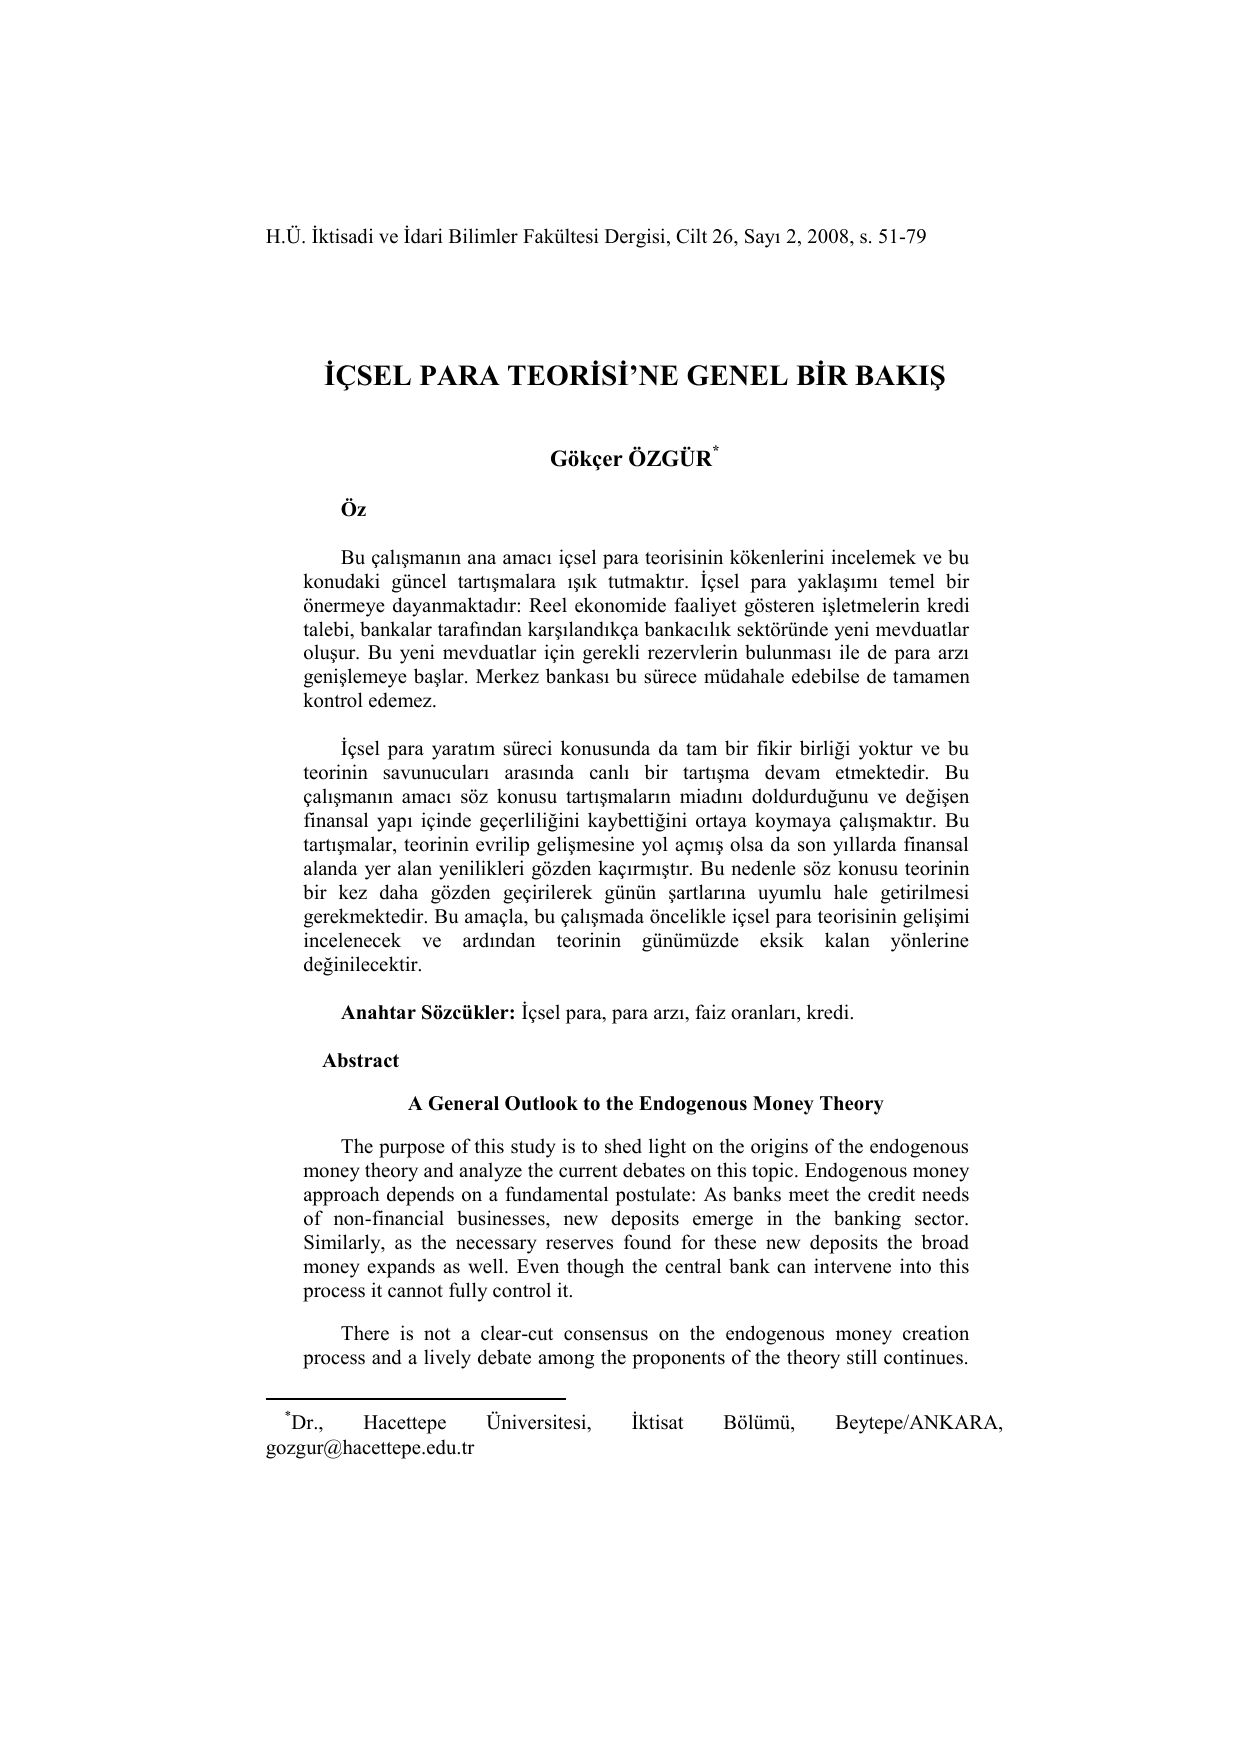 Ipart research paper 29 november 2007